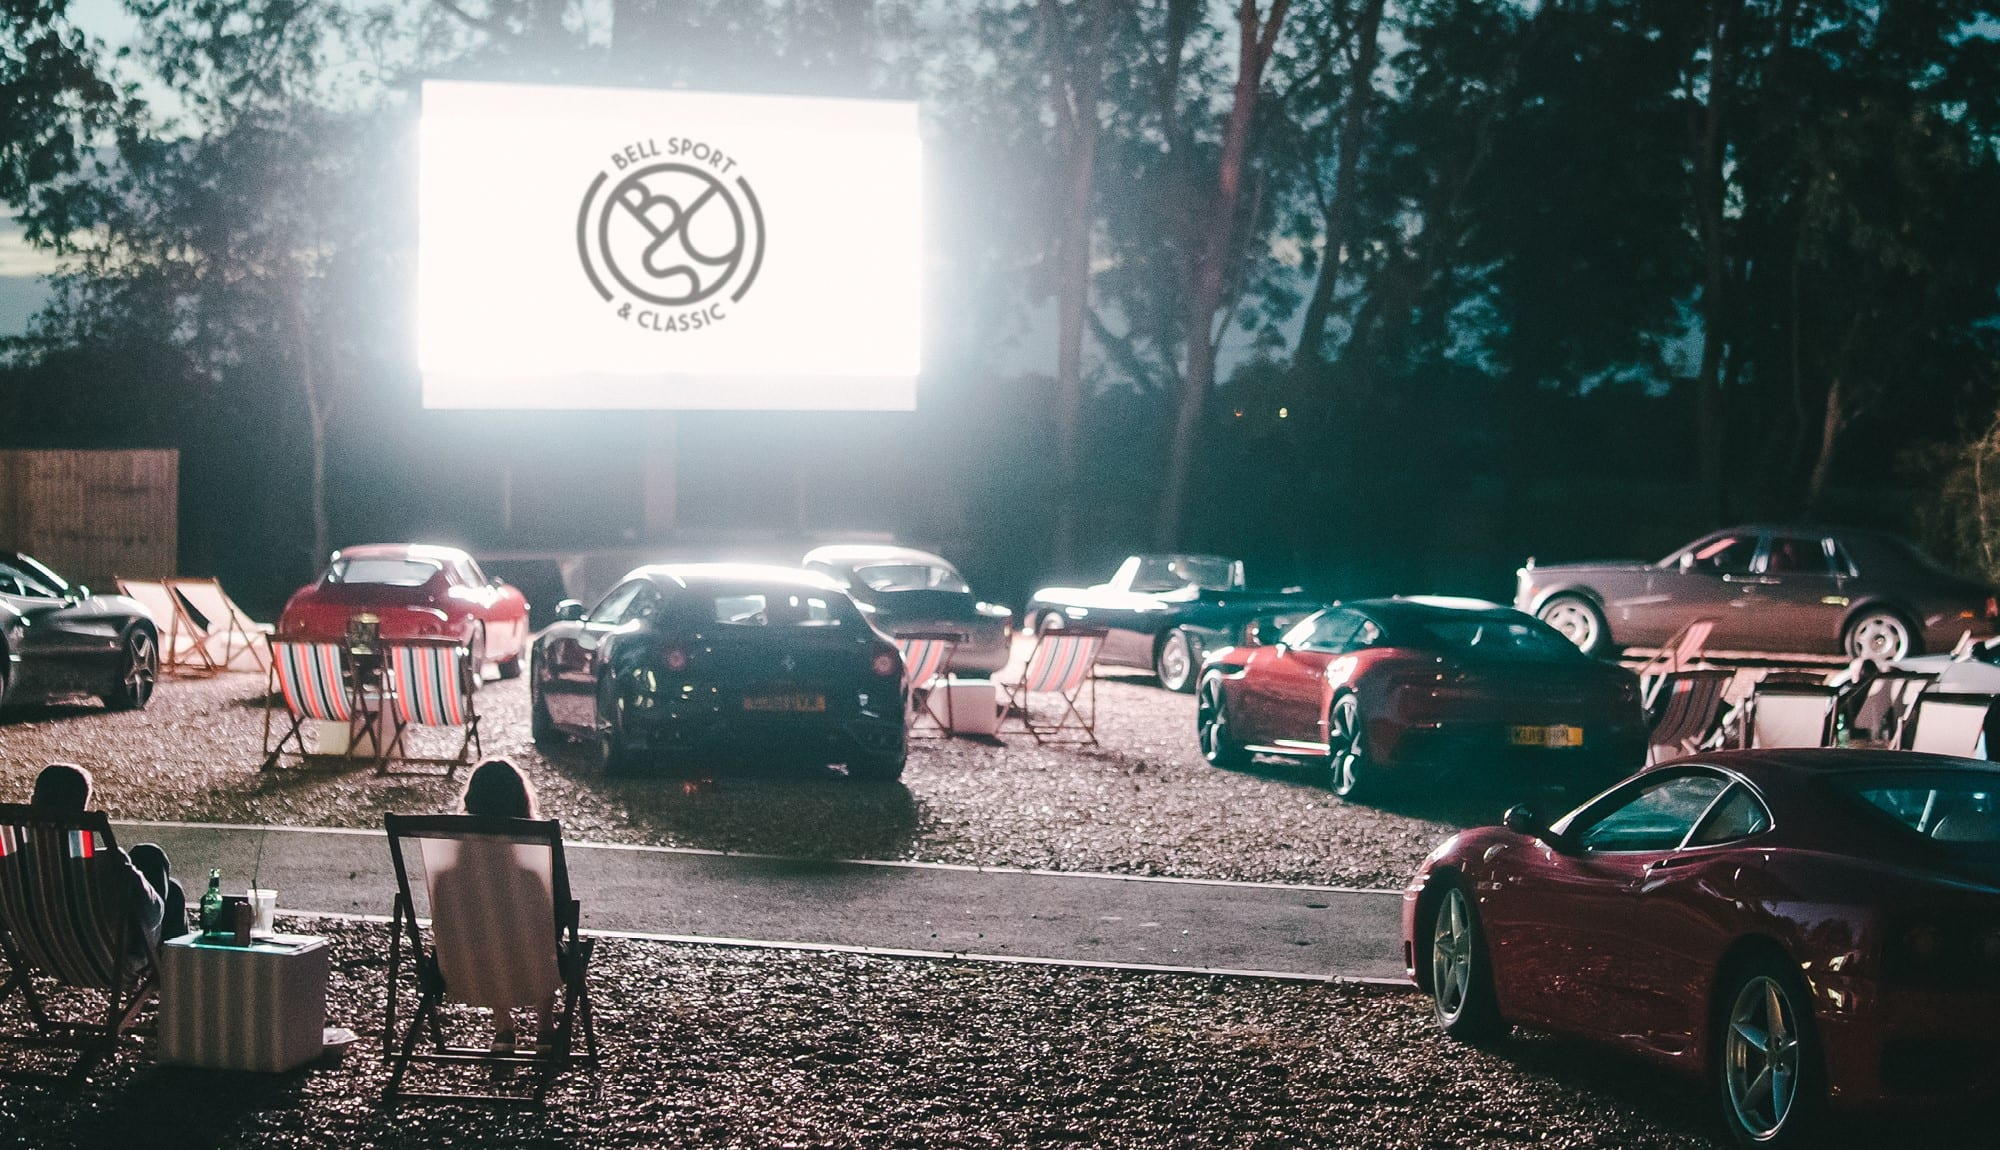 Bell Sport and Classic Drive-In Cinema